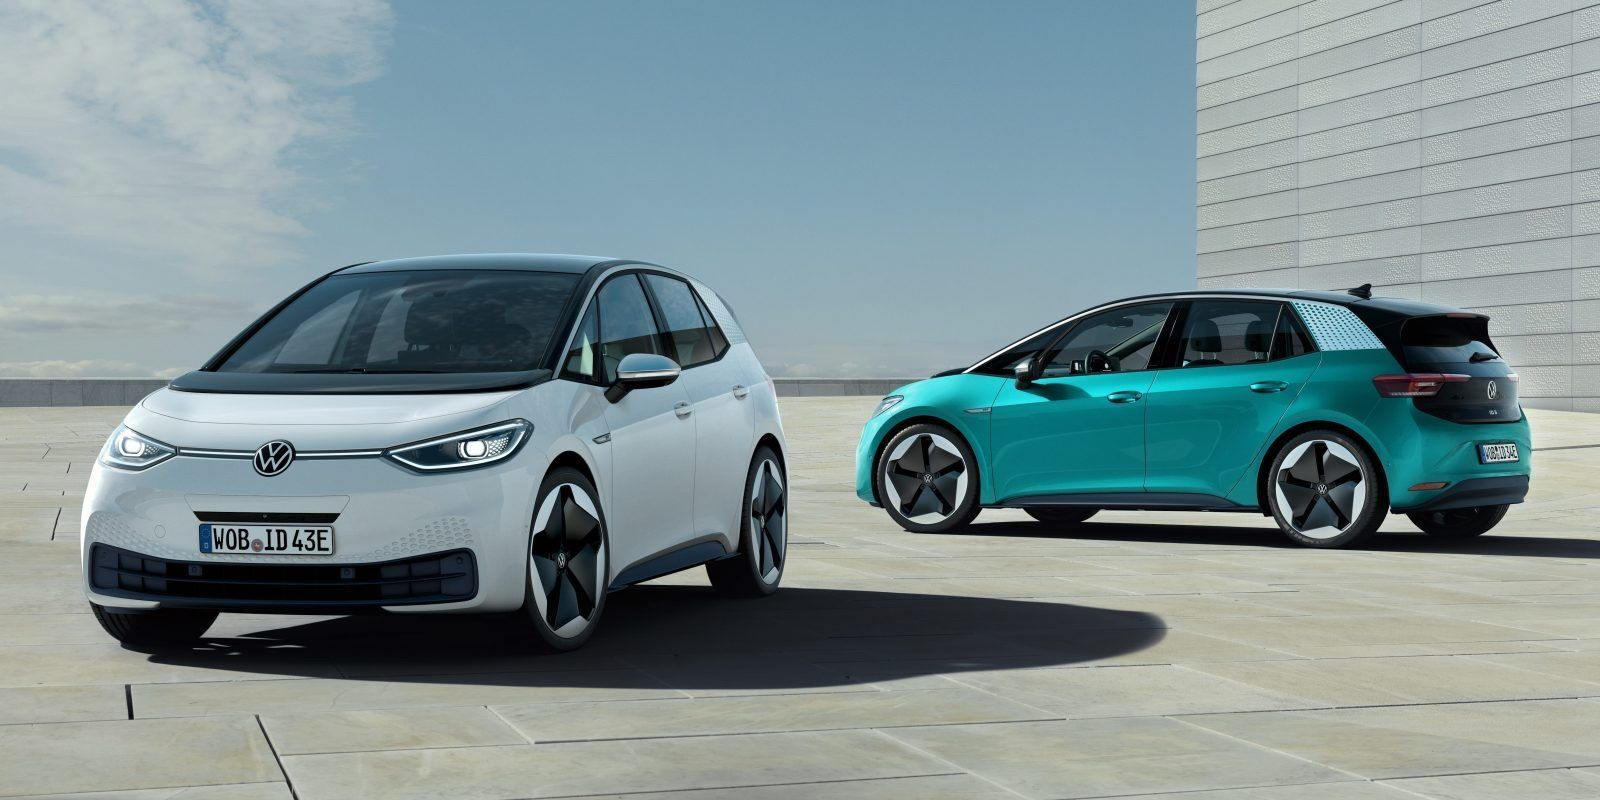 Vw Says It Will Drop 30 000 Id 3 Electric Cars At Once Will Be Cheaper Than Gas Cars In 2020 Electric Cars Cars Uk Volkswagen